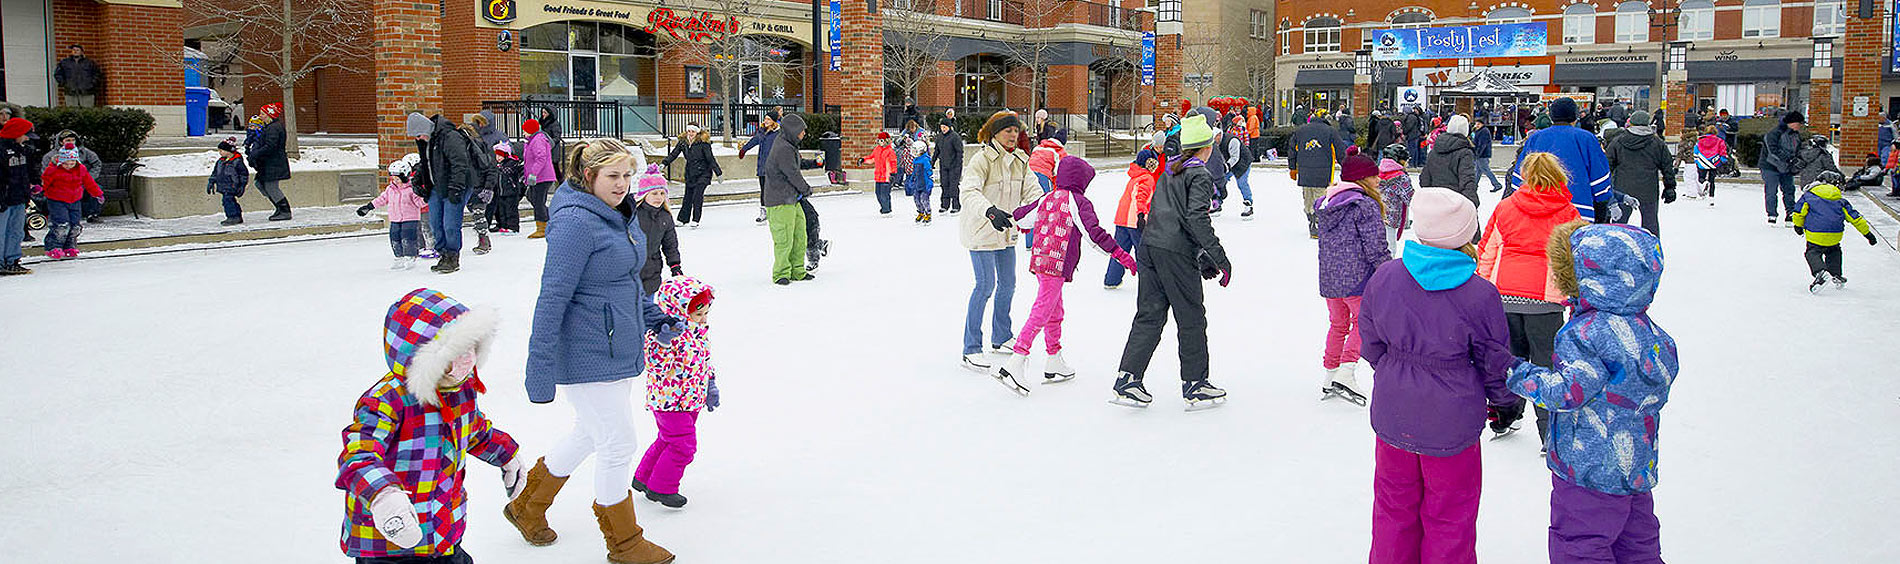 harmony square - skaters